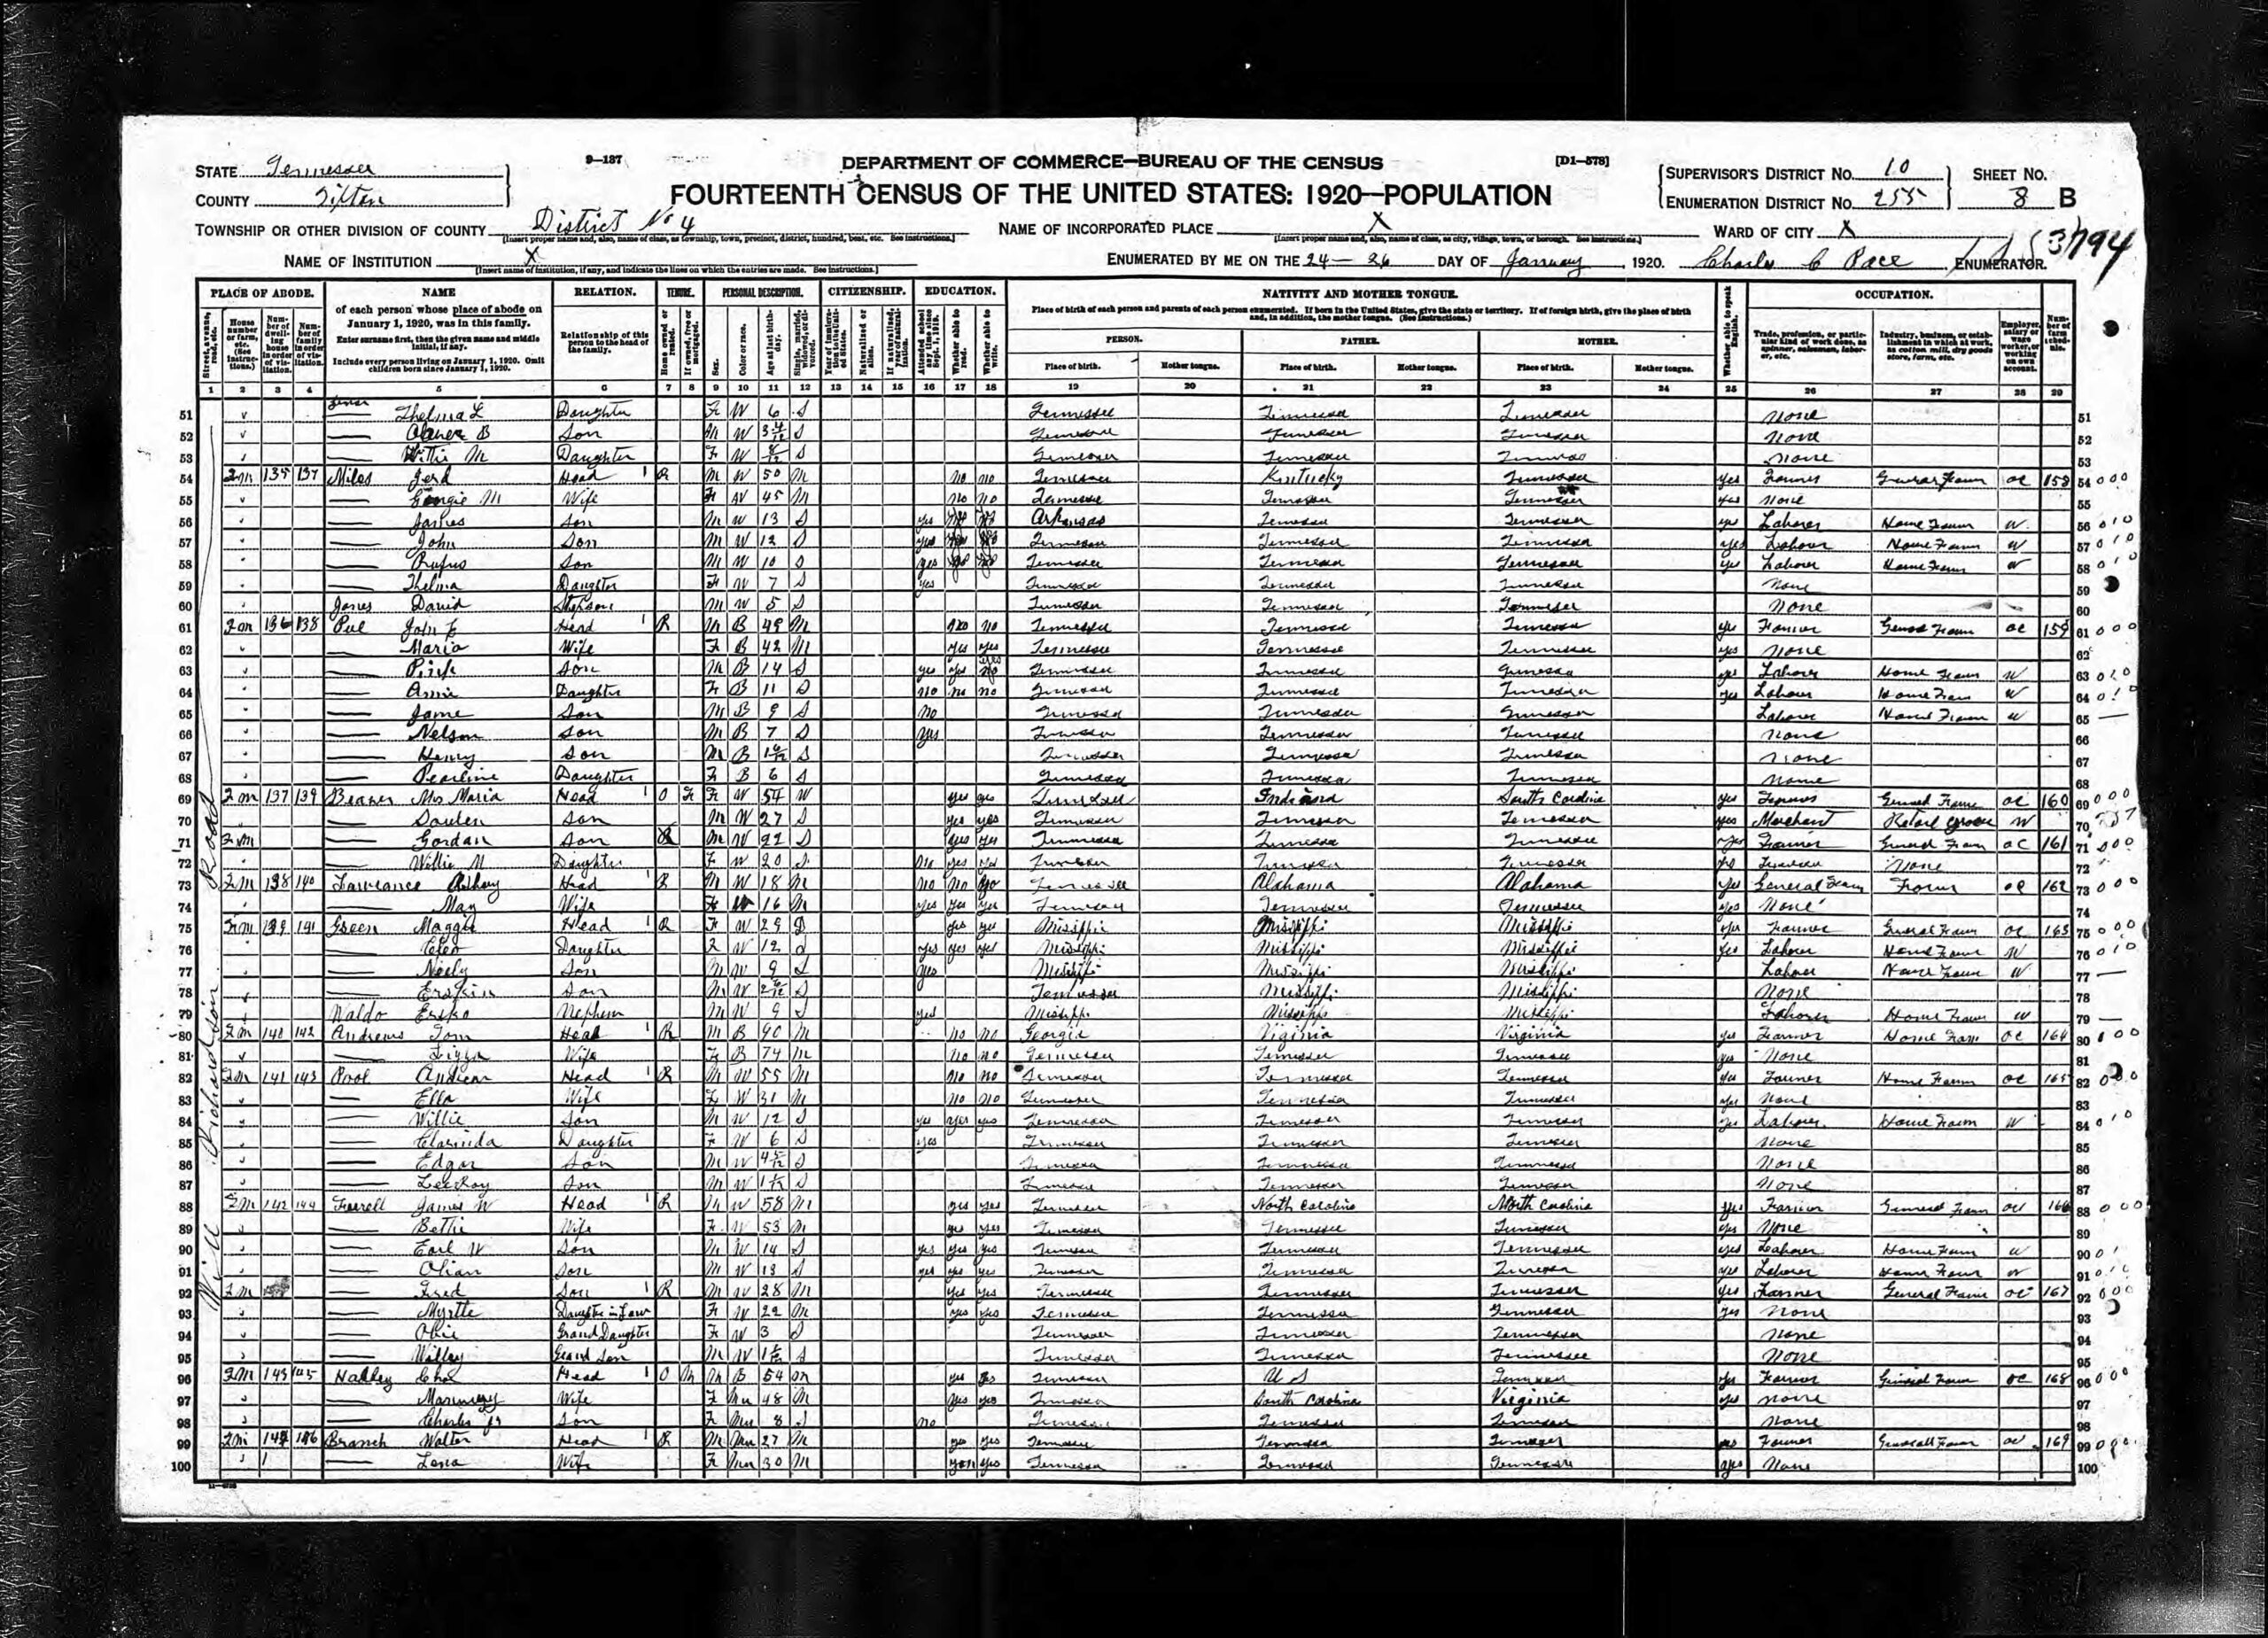 1920 US Census Dist 255 Civil Dist 4 Tipton County